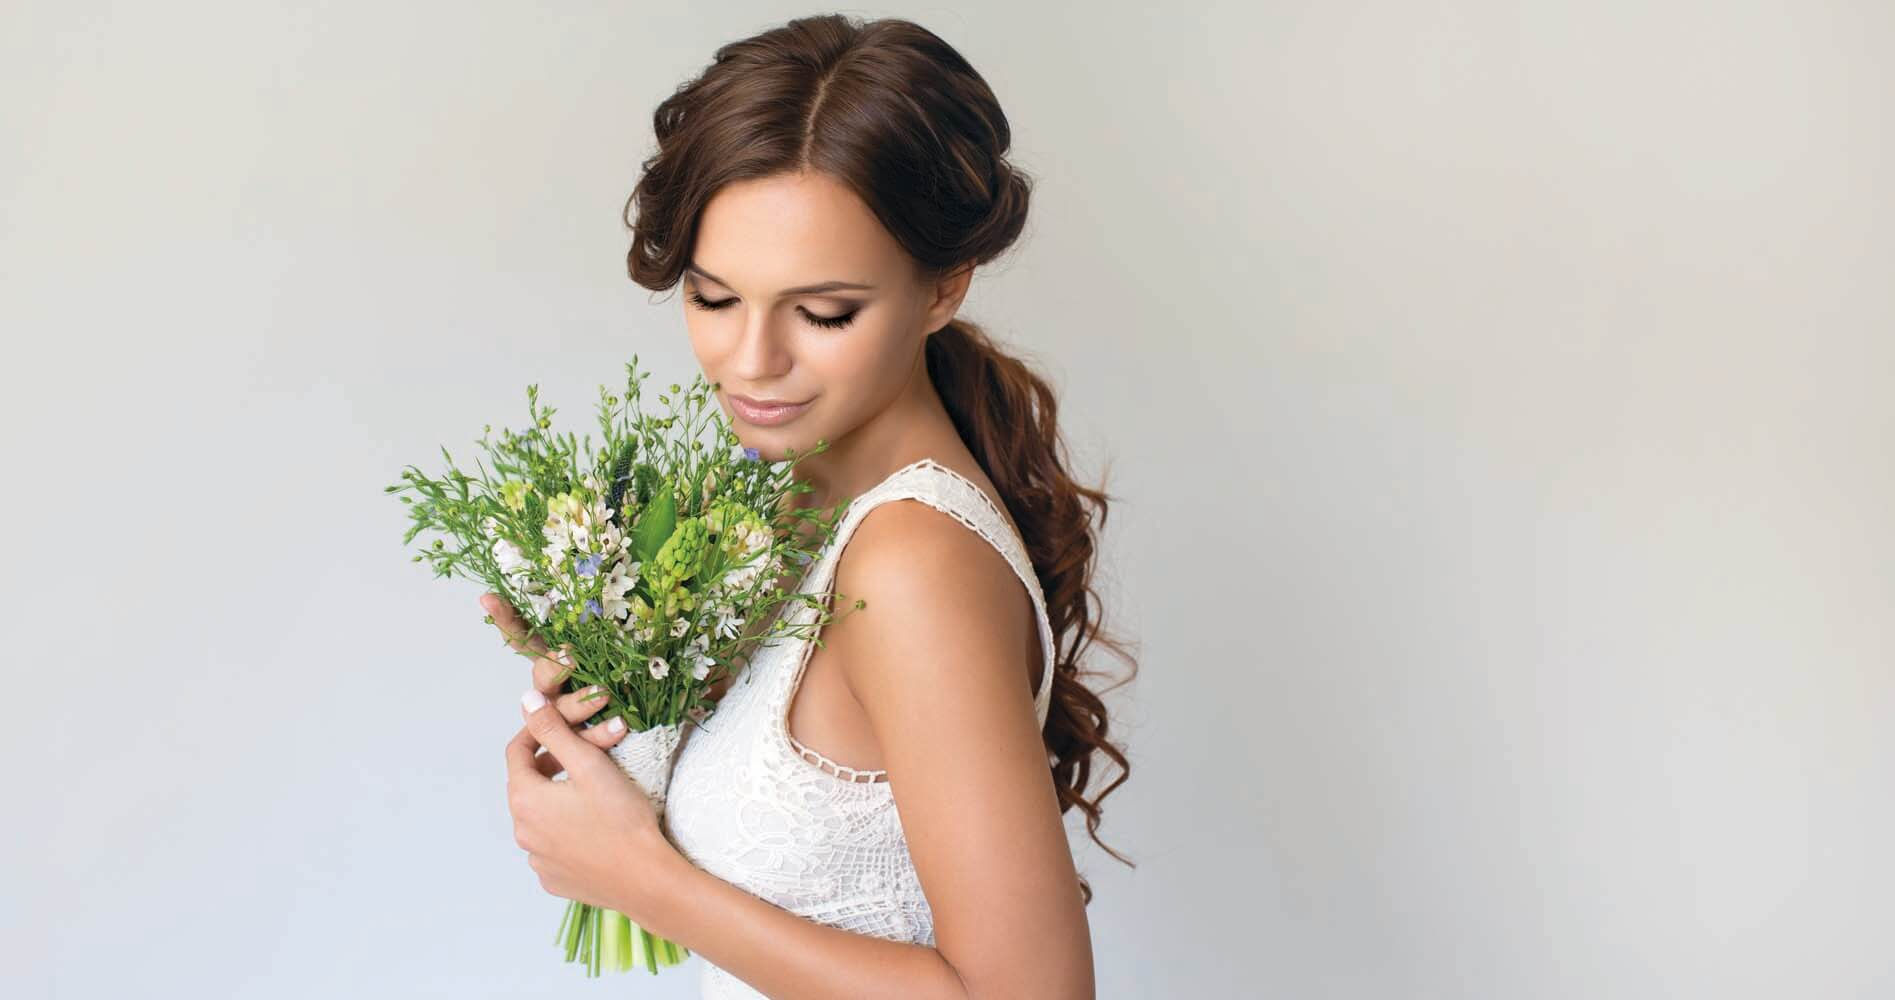 Studio shot of young beautiful bride. Professional make up and hair style.